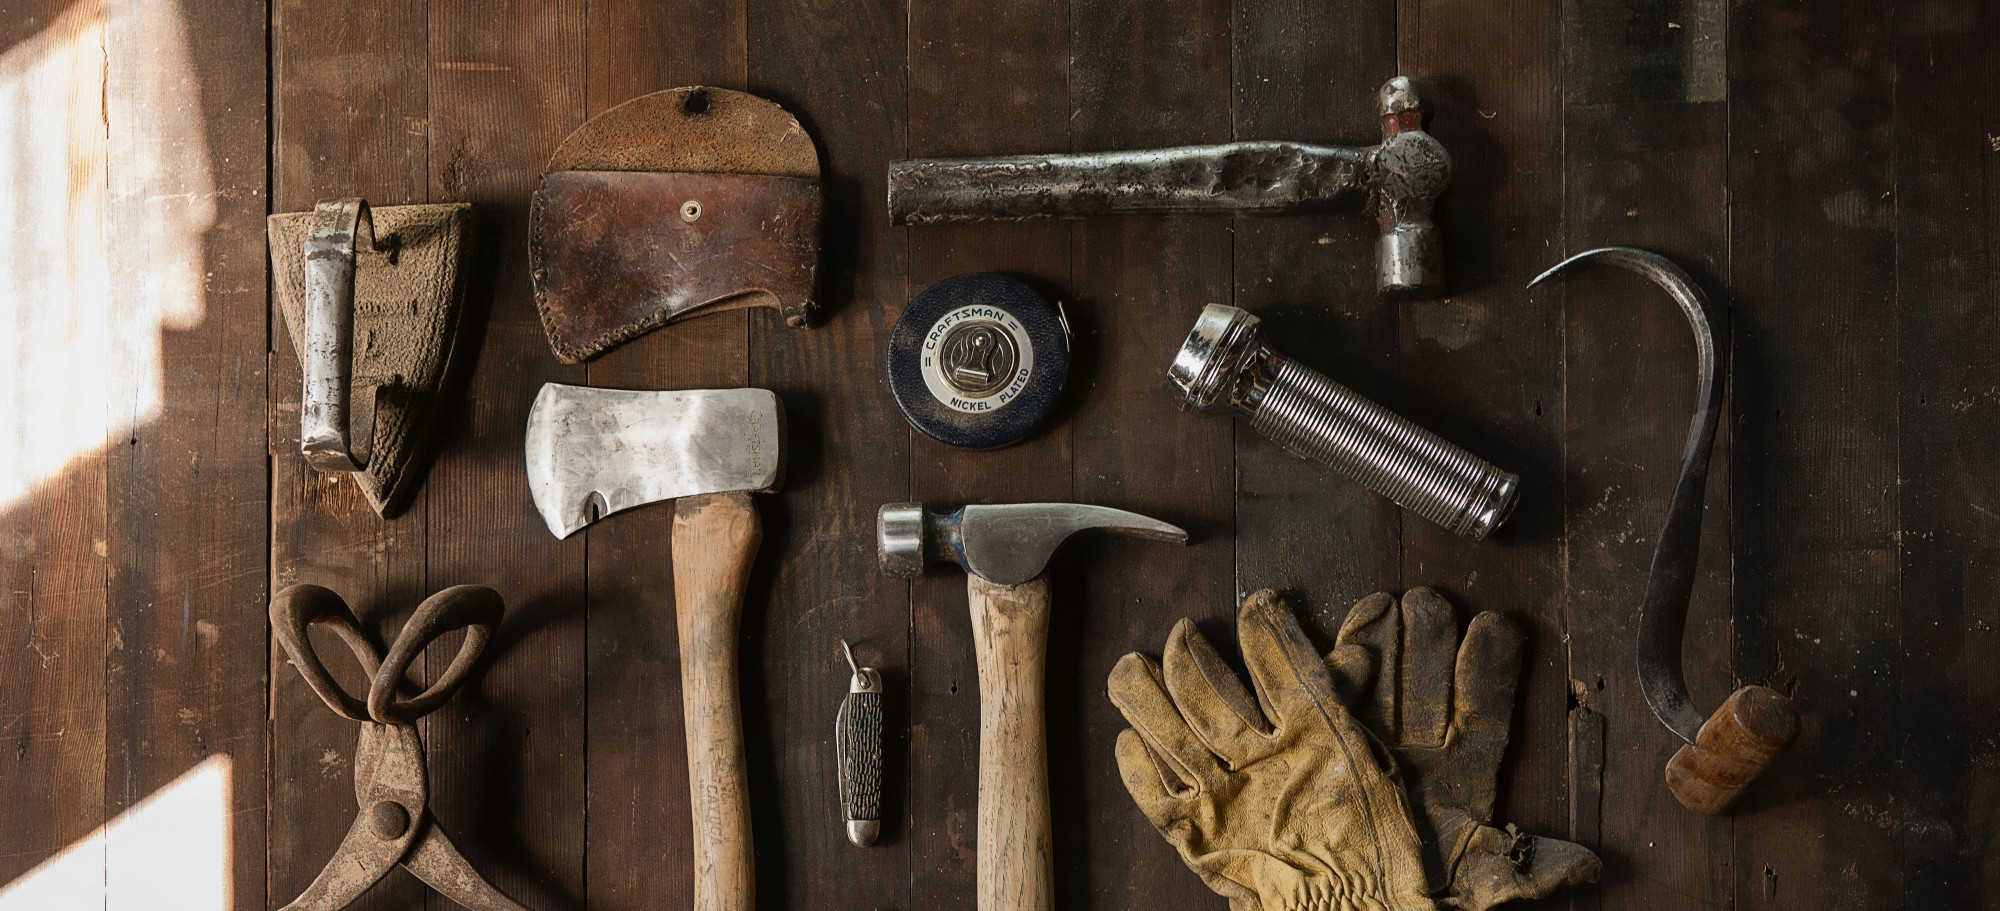 A table displaying a set of tools, like a hammer, an axe and gloves